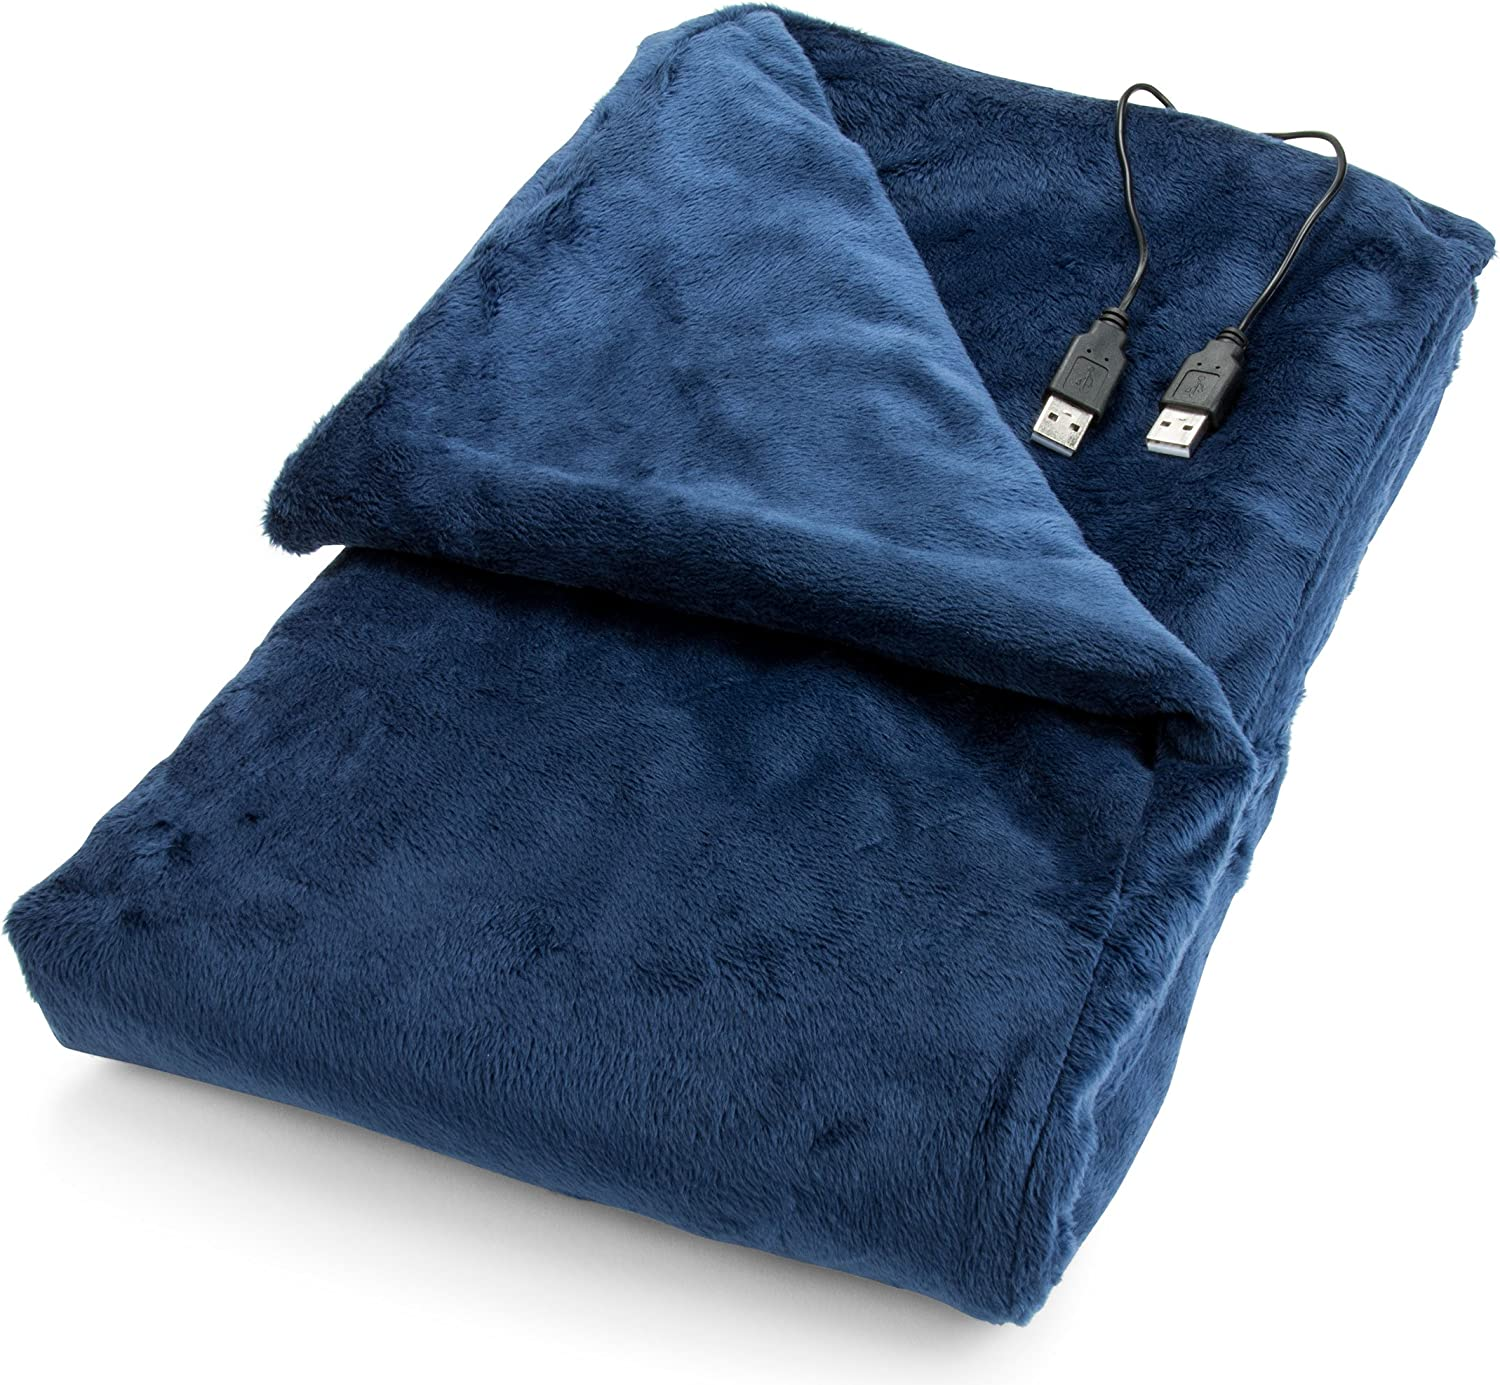 Convenient Gadgets & Gifts USB Heated Shawl and Lap Blanket - Blue Color - USB Heated Throw Perfect Alternative to an Office Desk Heater